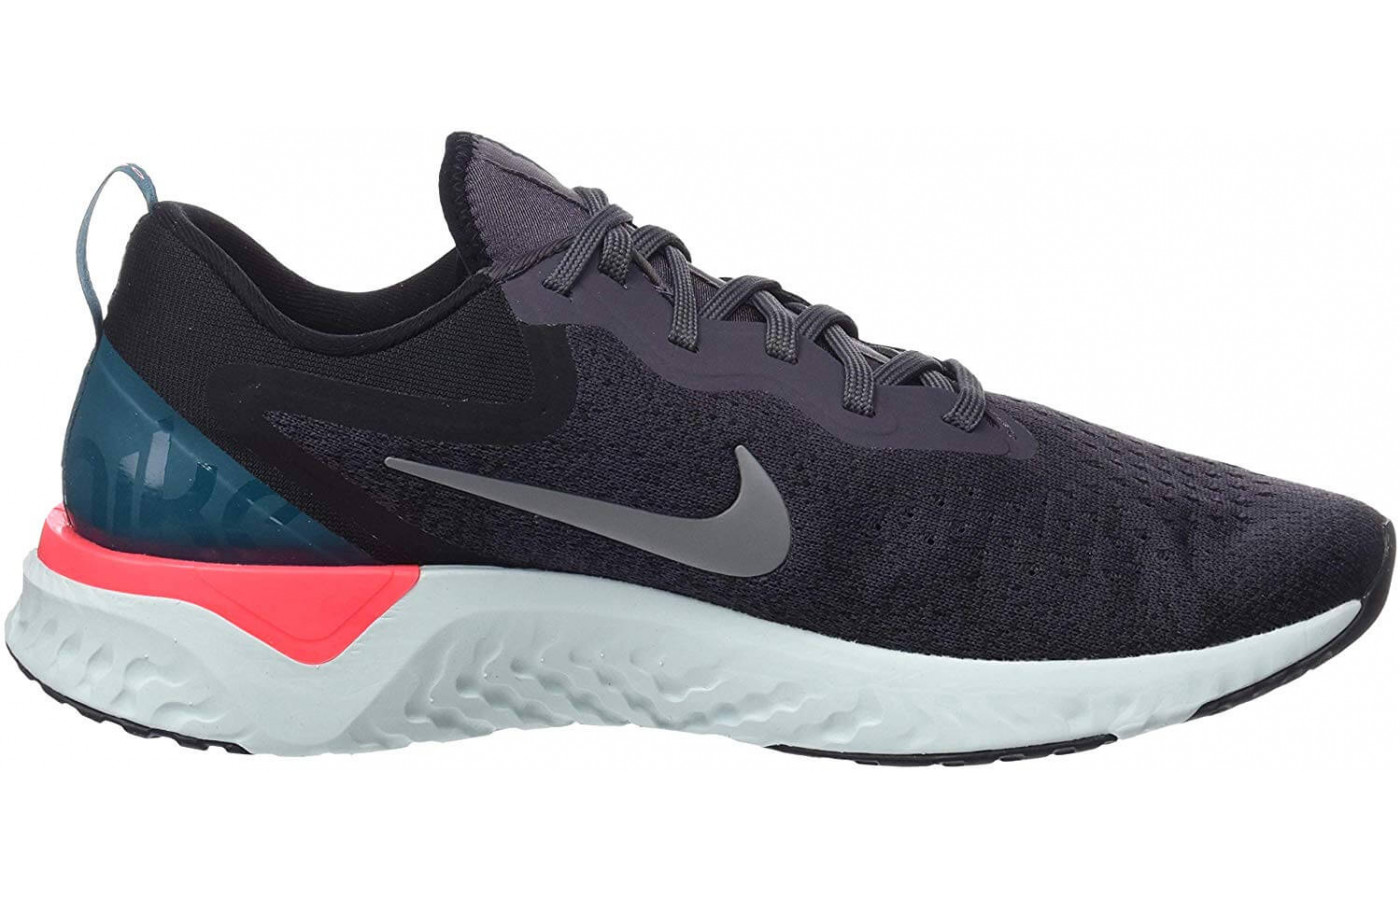 4168a470d1e0 Nike Odyssey React Reviewed - To Buy or Not in Apr 2019